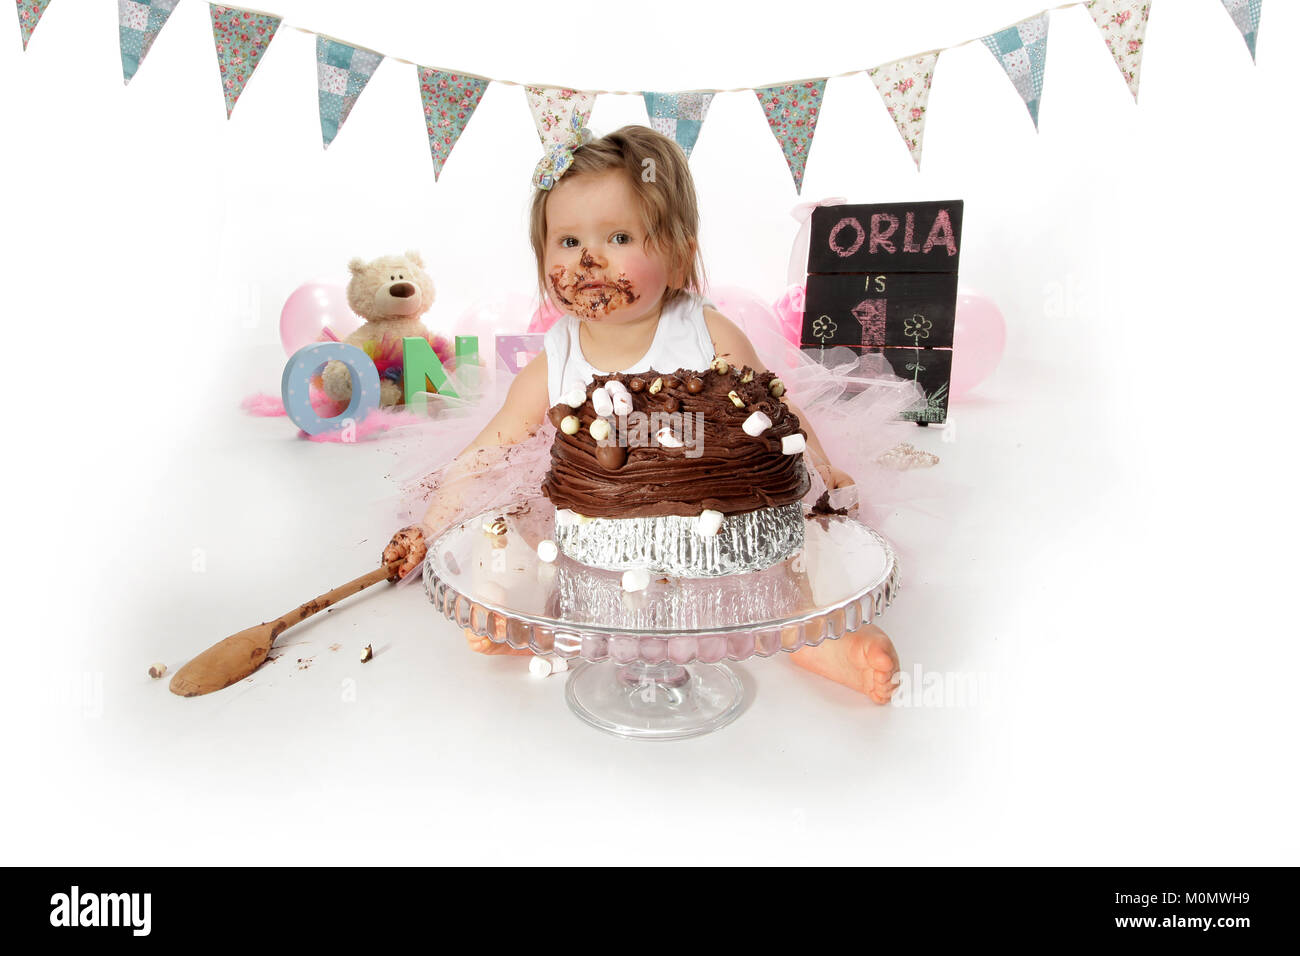 Miraculous 1 Year Old Girl Birthday Party Cake Smash Messy Chocolate Cake Funny Birthday Cards Online Eattedamsfinfo